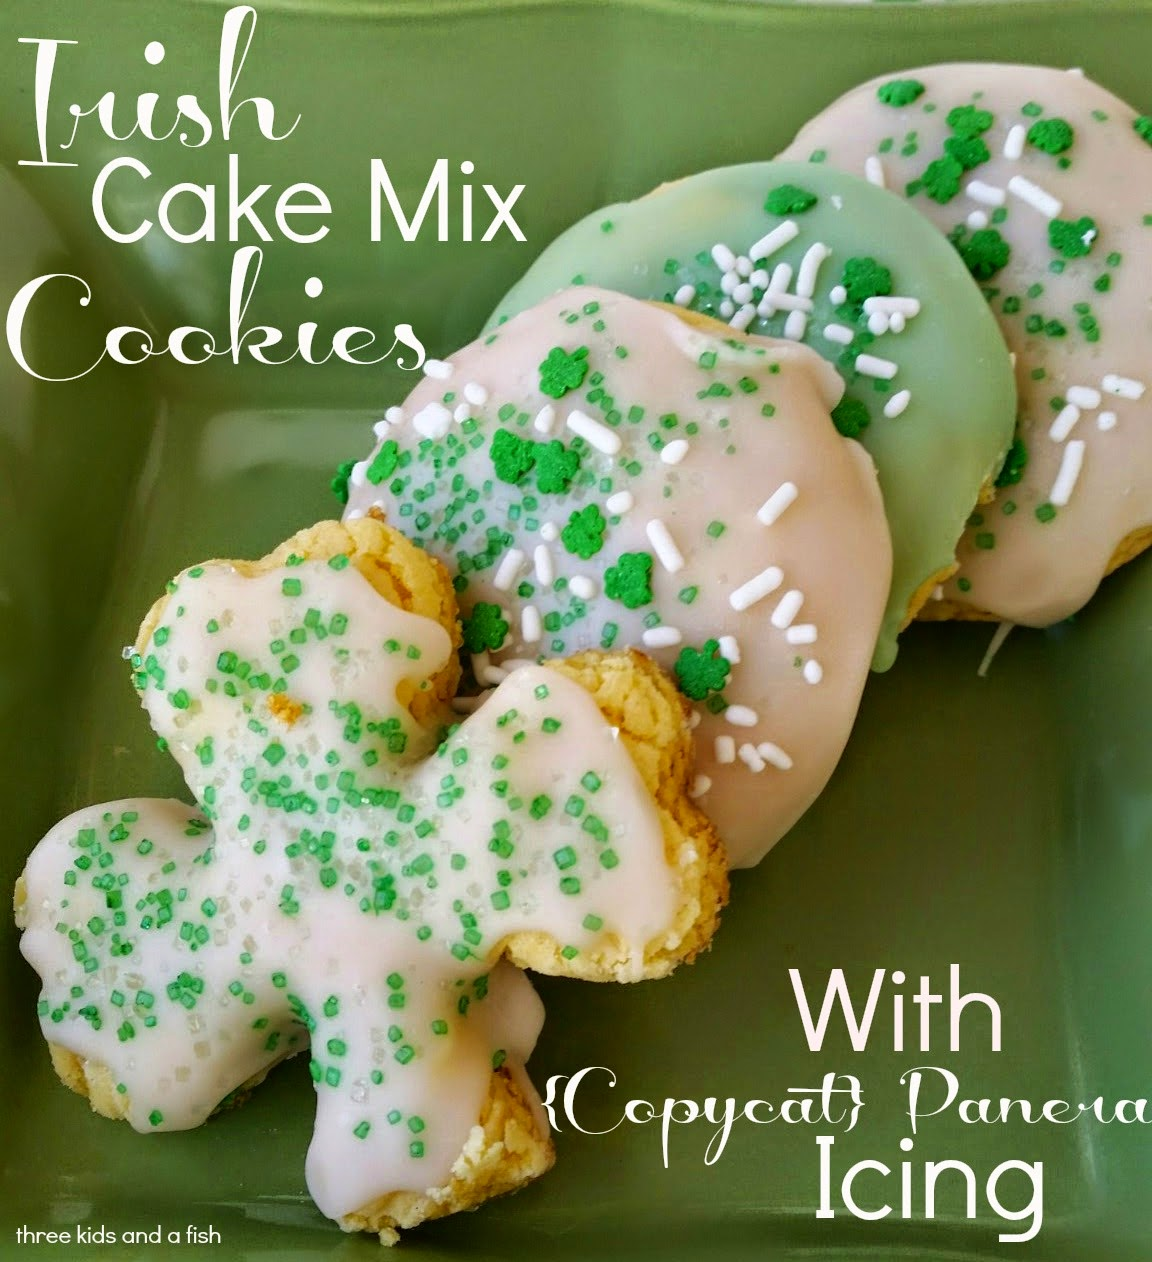 Irish cake mix cookies with copycat Panera icing from Three Kids And A Fish